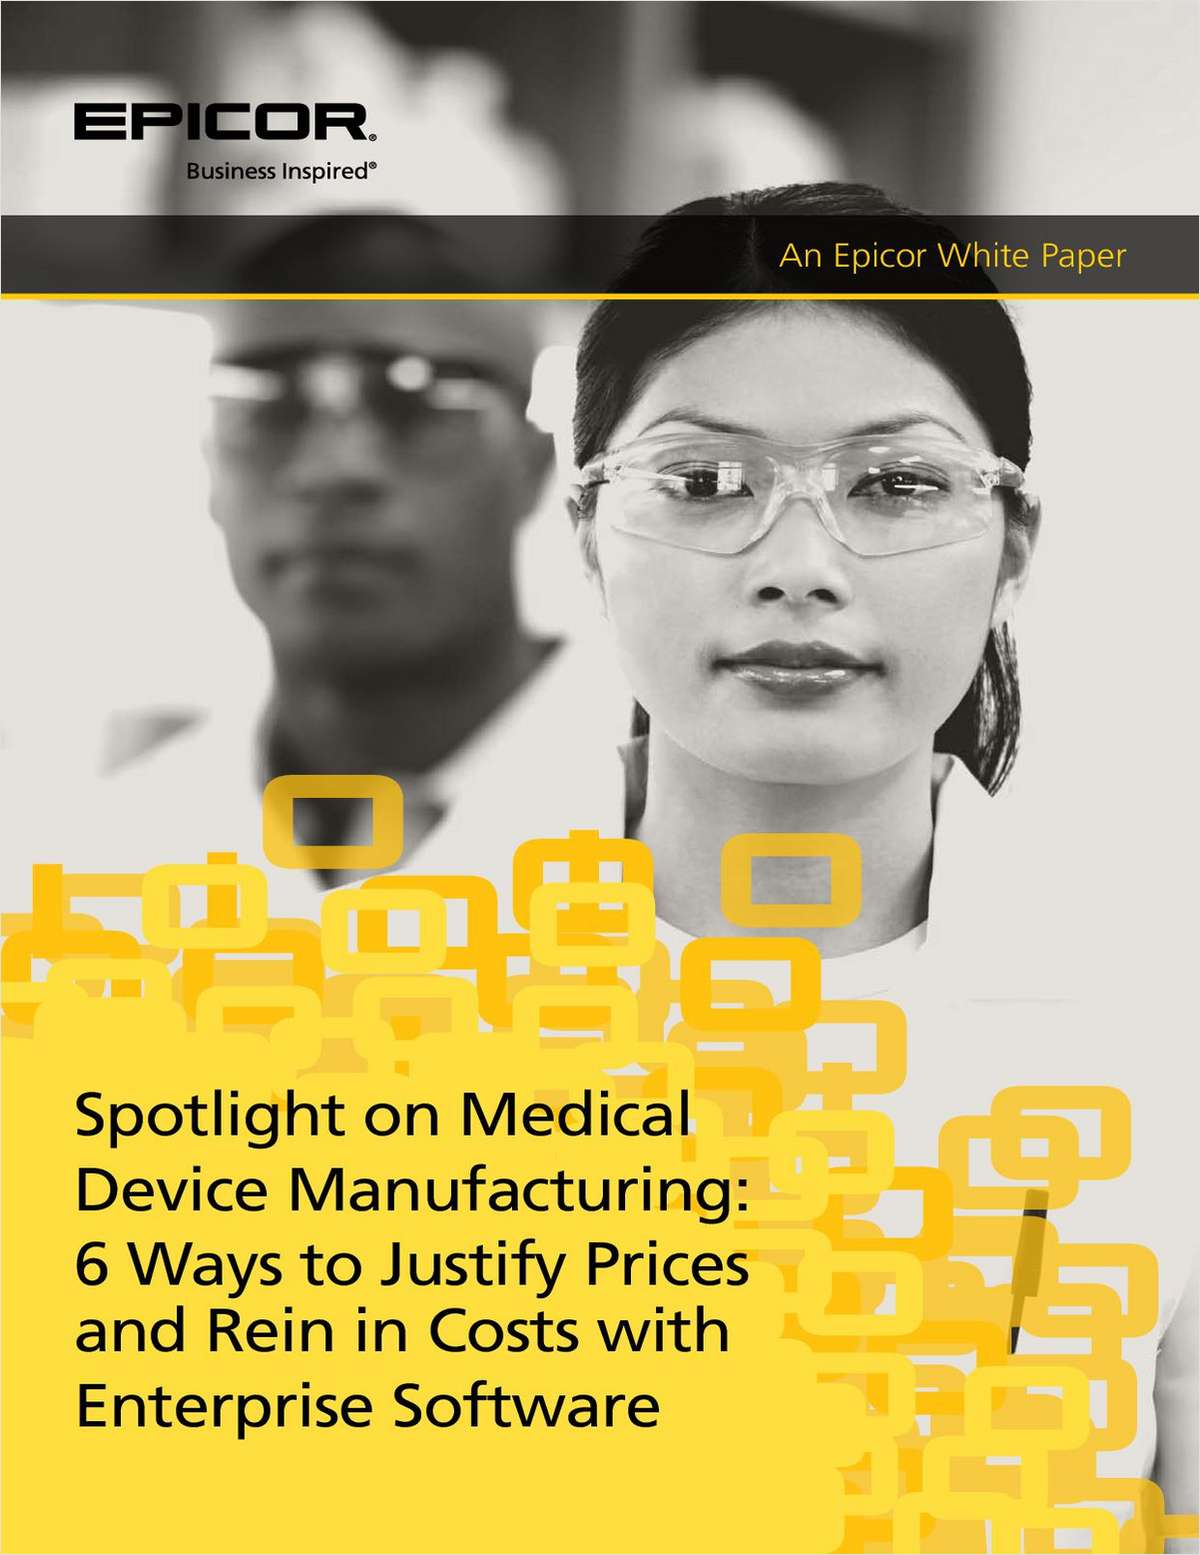 Spotlight on Medical Device Manufacturing: 6 Ways to Justify Prices and Rein in Costs with Enterprise Software